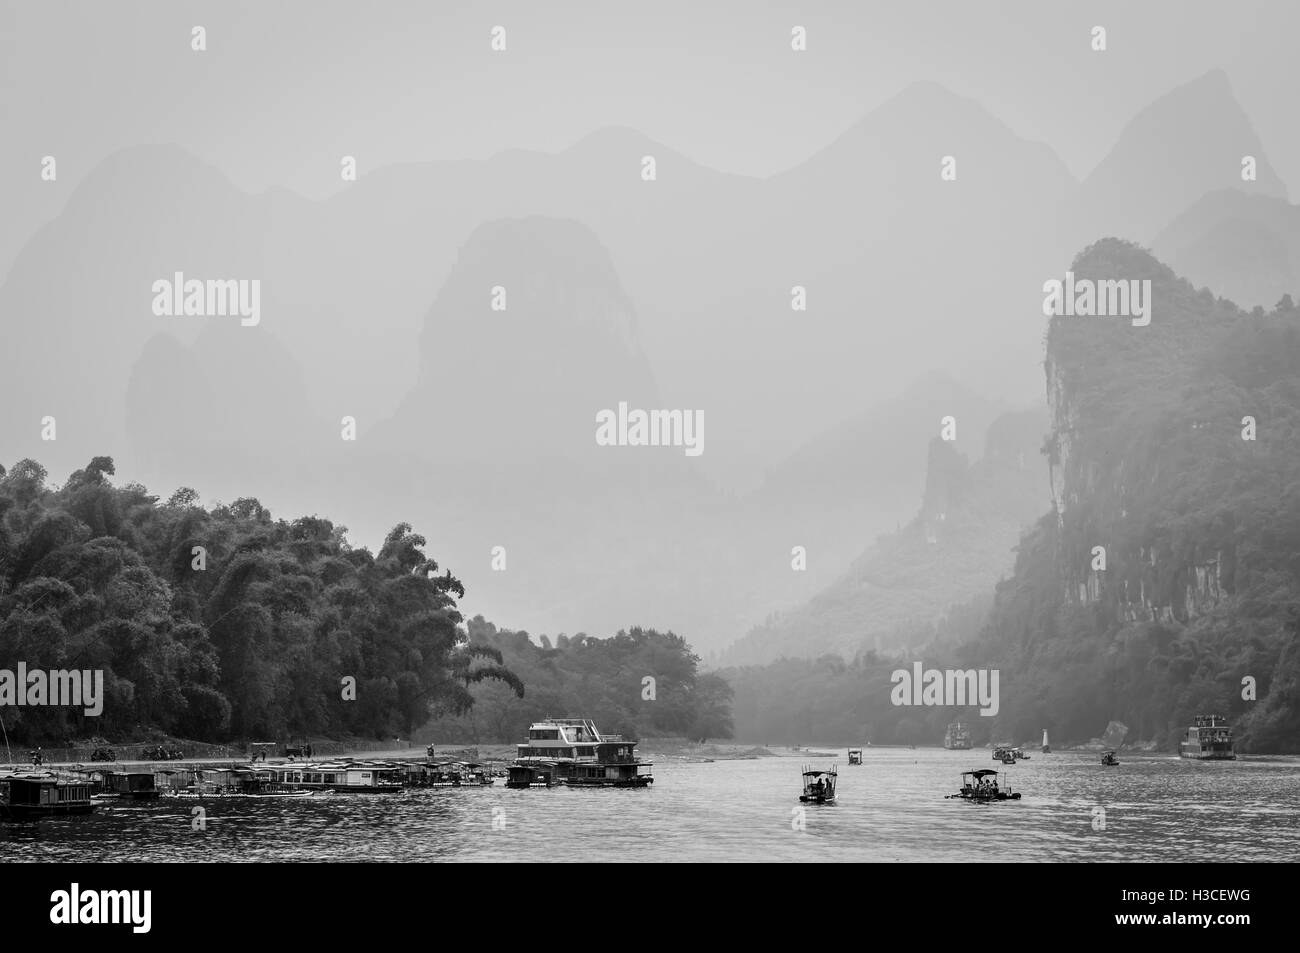 Cruise ship  and boats packed with tourists travels the magnificent scenic route in the haze along the Li river - Stock Image